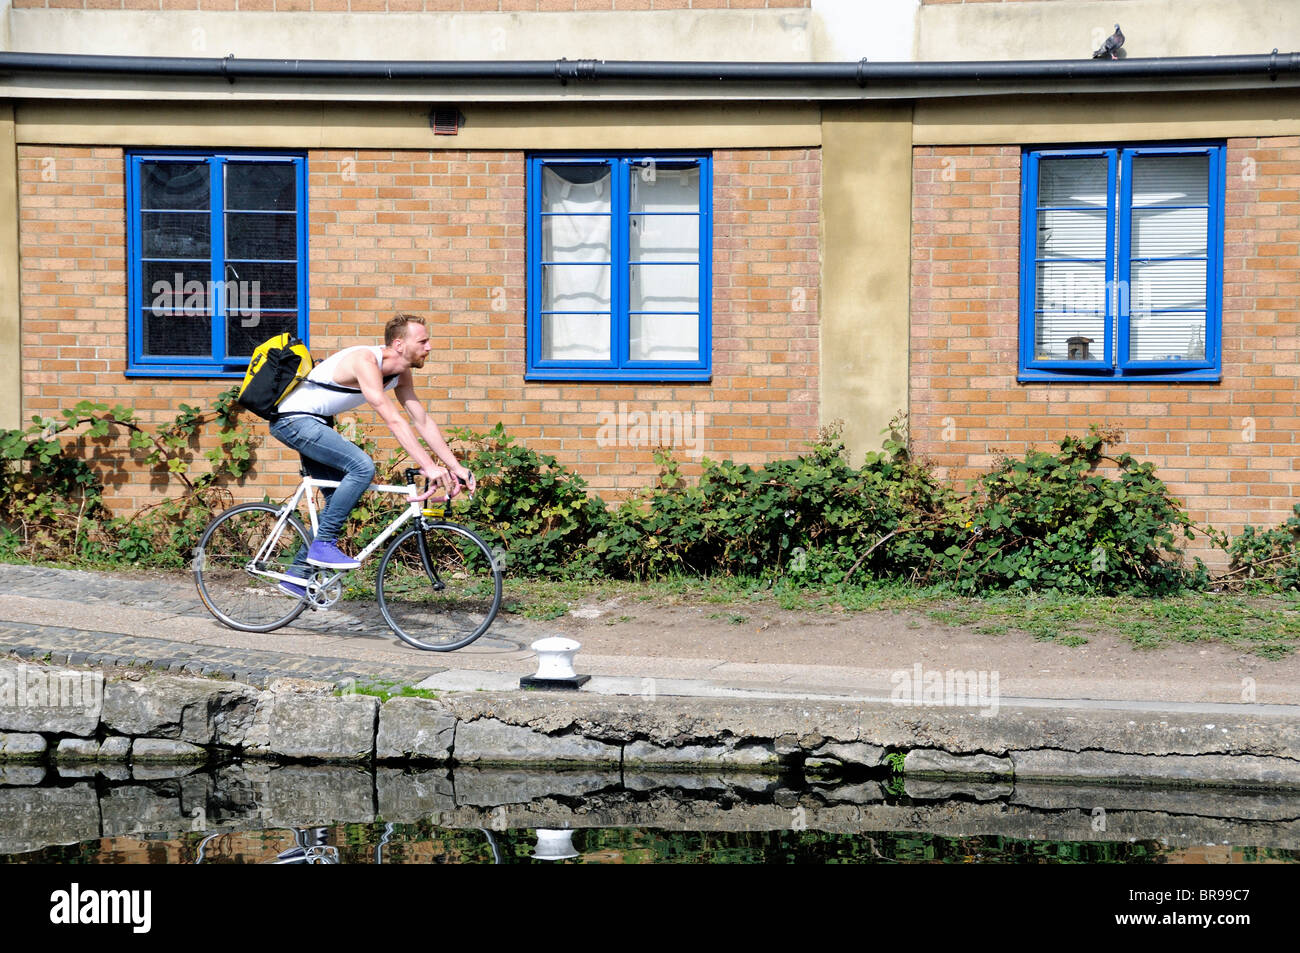 Male cyclist on towpath of  the Regent's Canal Hackney London England UK - Stock Image